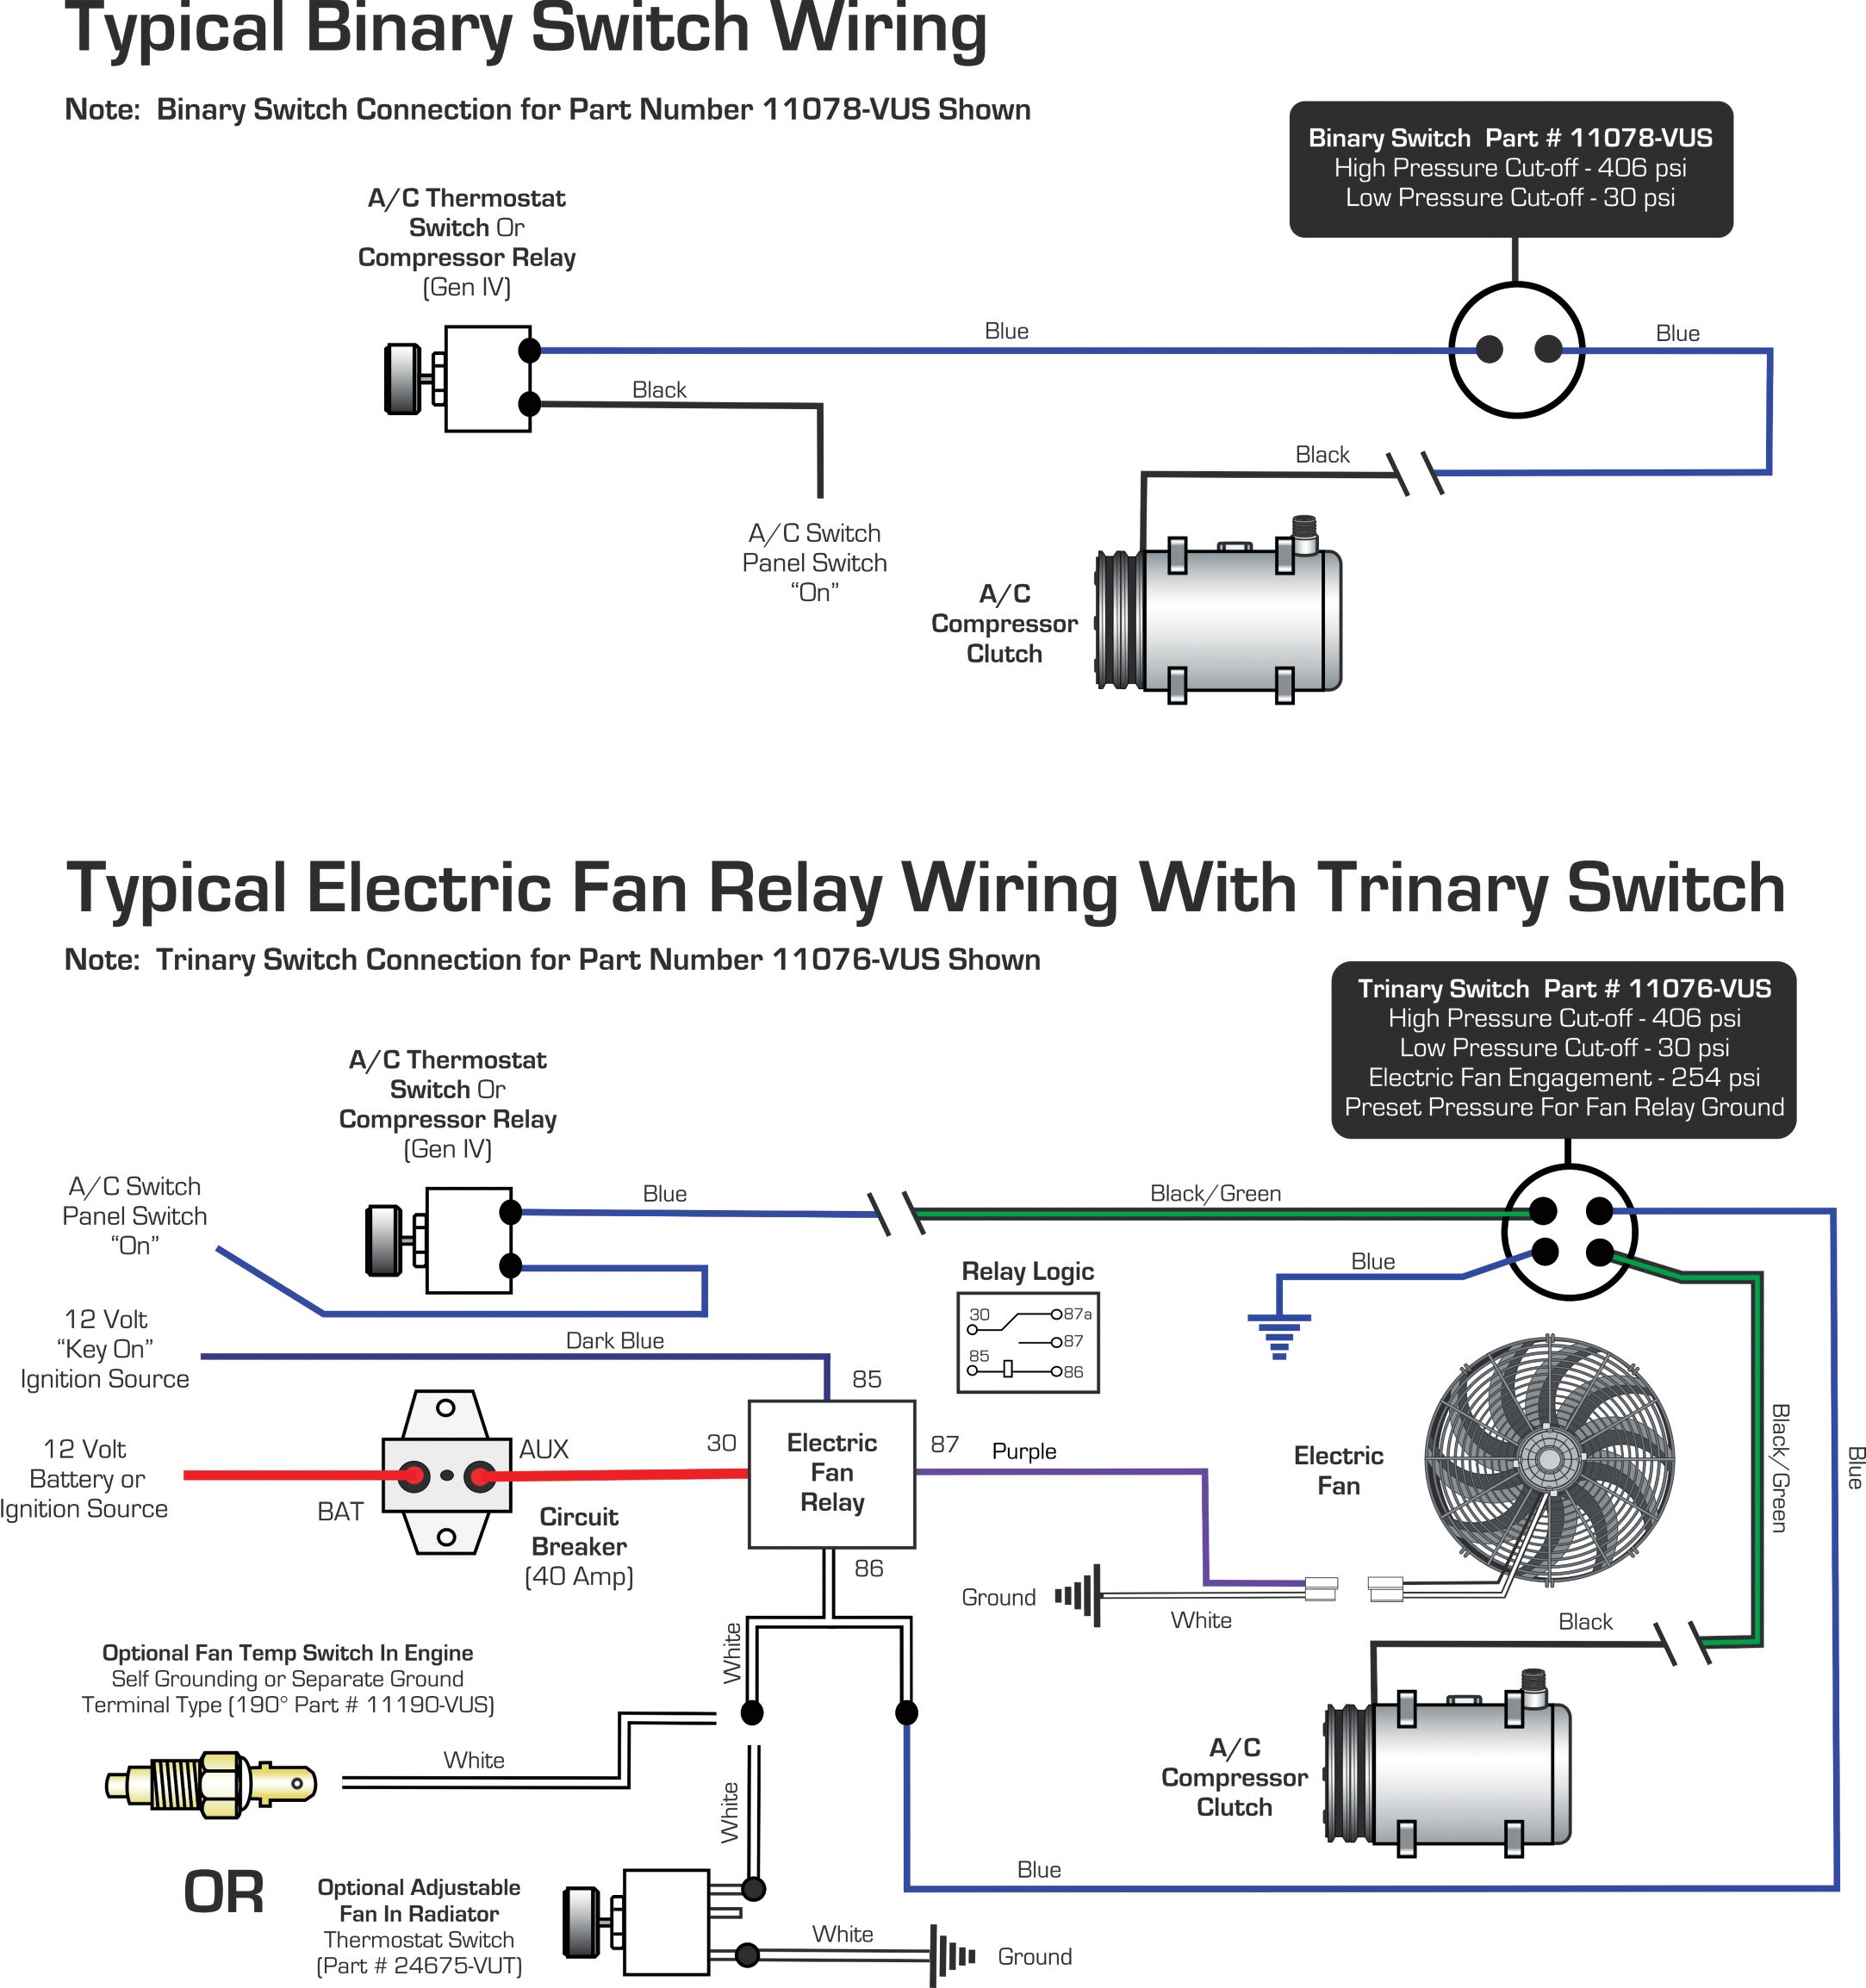 4 Wire Cooling Fan Pinout Check Now Blog Foxconn 12v Diagram Ac Binary Switch Wiring Online Schematic U2022 Trinary Vintage Air